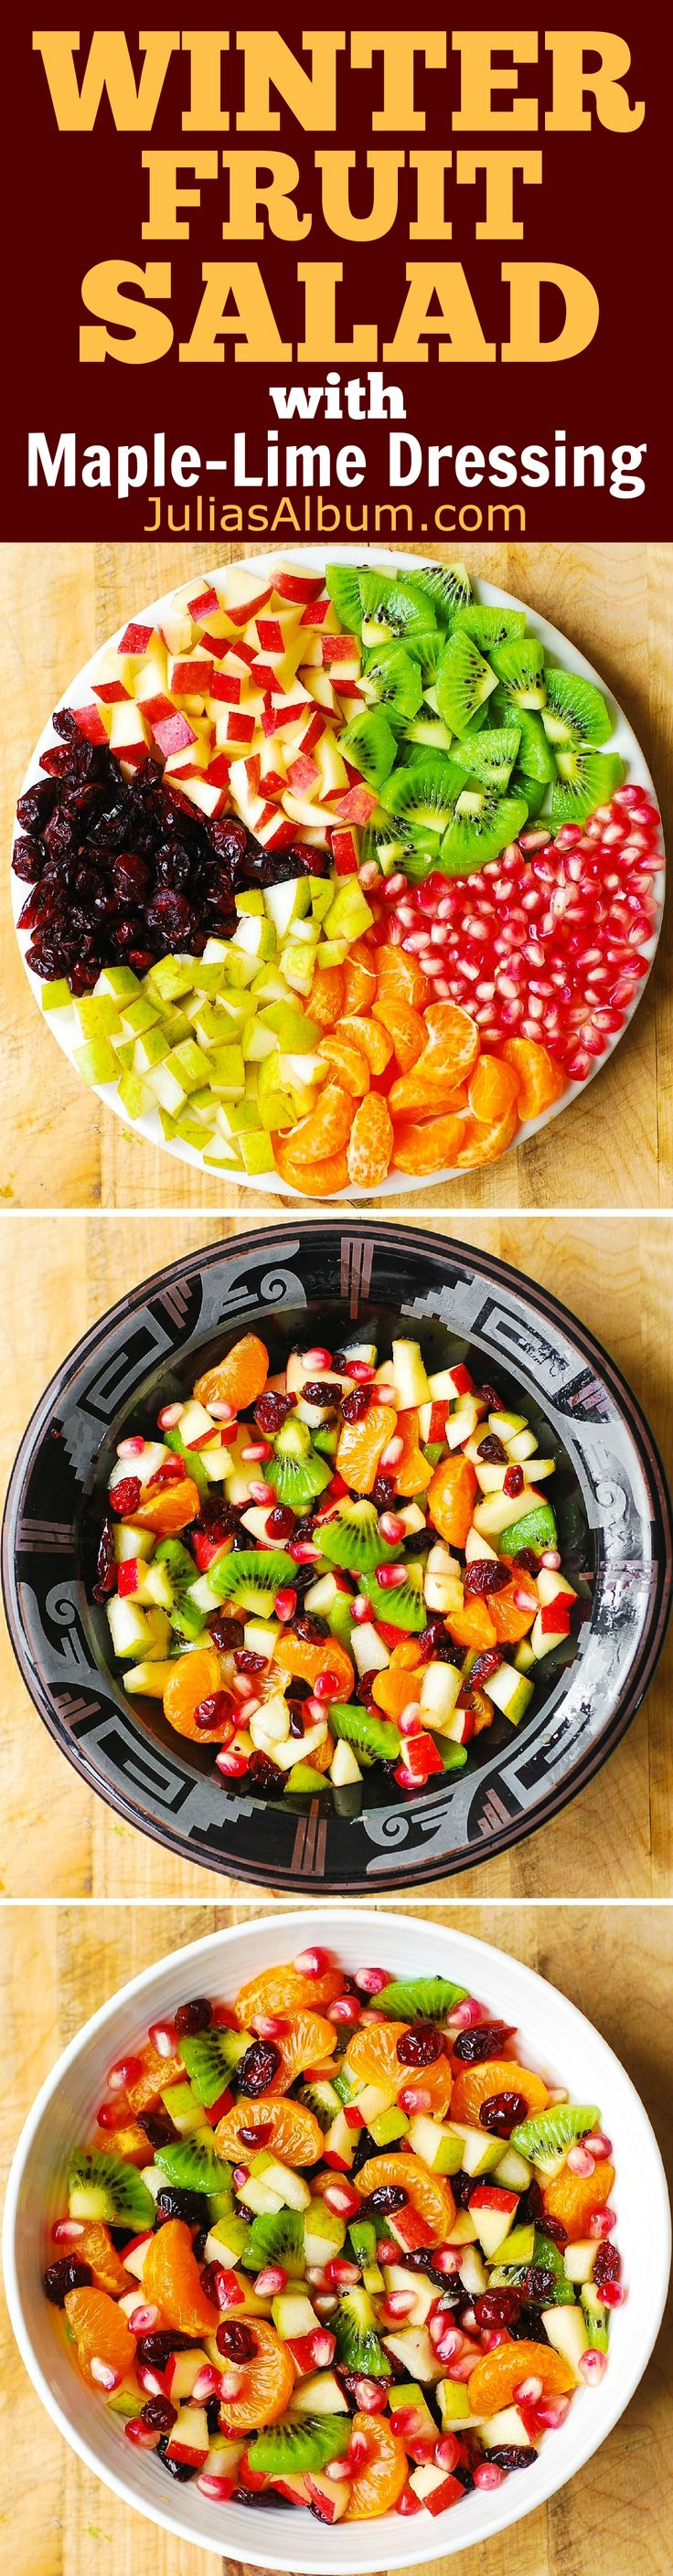 Winter Fruit Salad with Maple-Lime Dressing - healthy, gluten free salad! #Thanksgiving #Christmas #Holidays #recipe